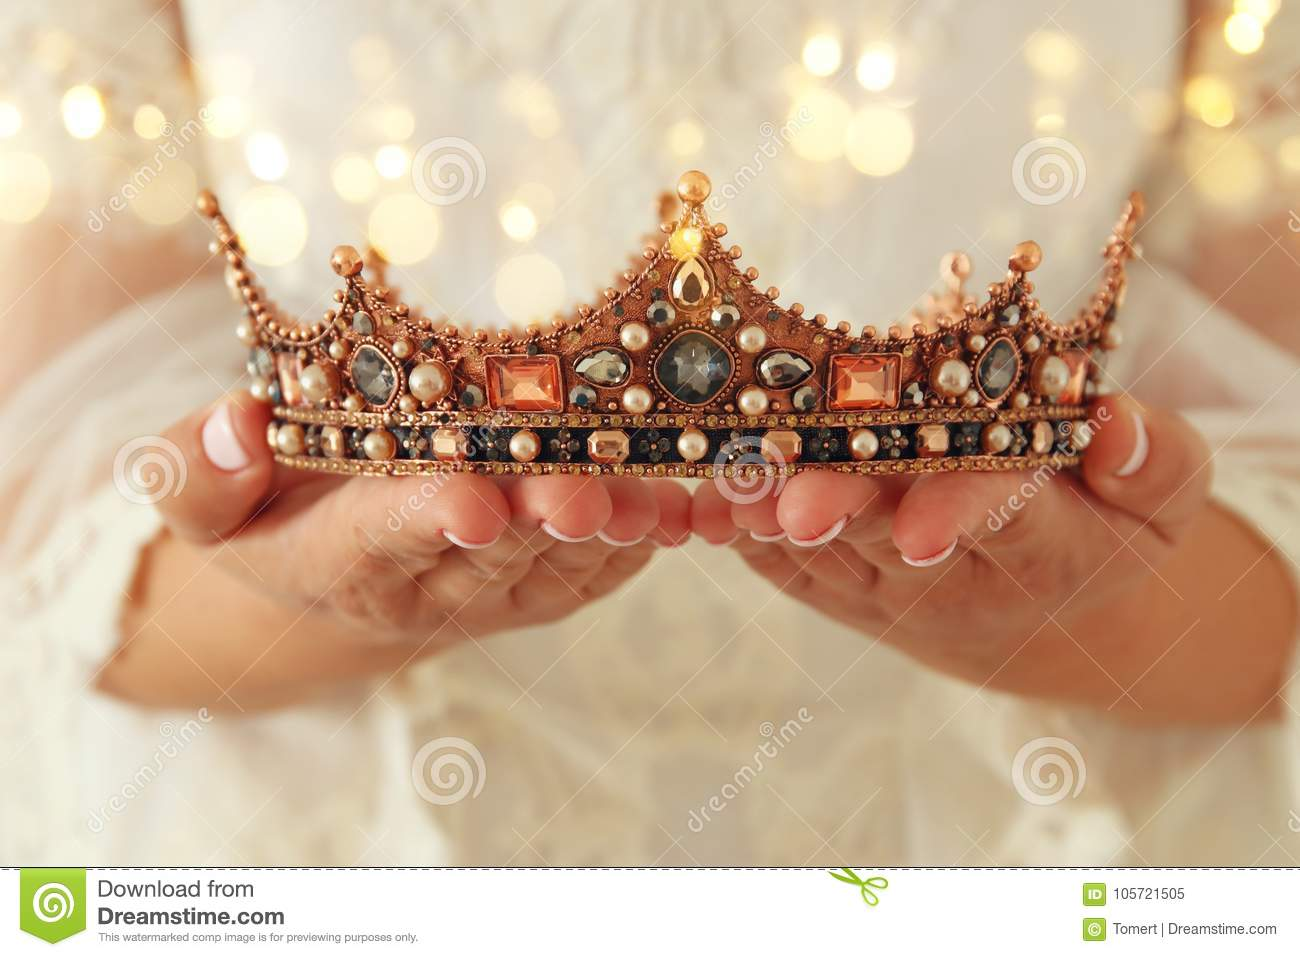 image of beautiful lady with white lace dress holding diamond crown. fantasy medieval period.